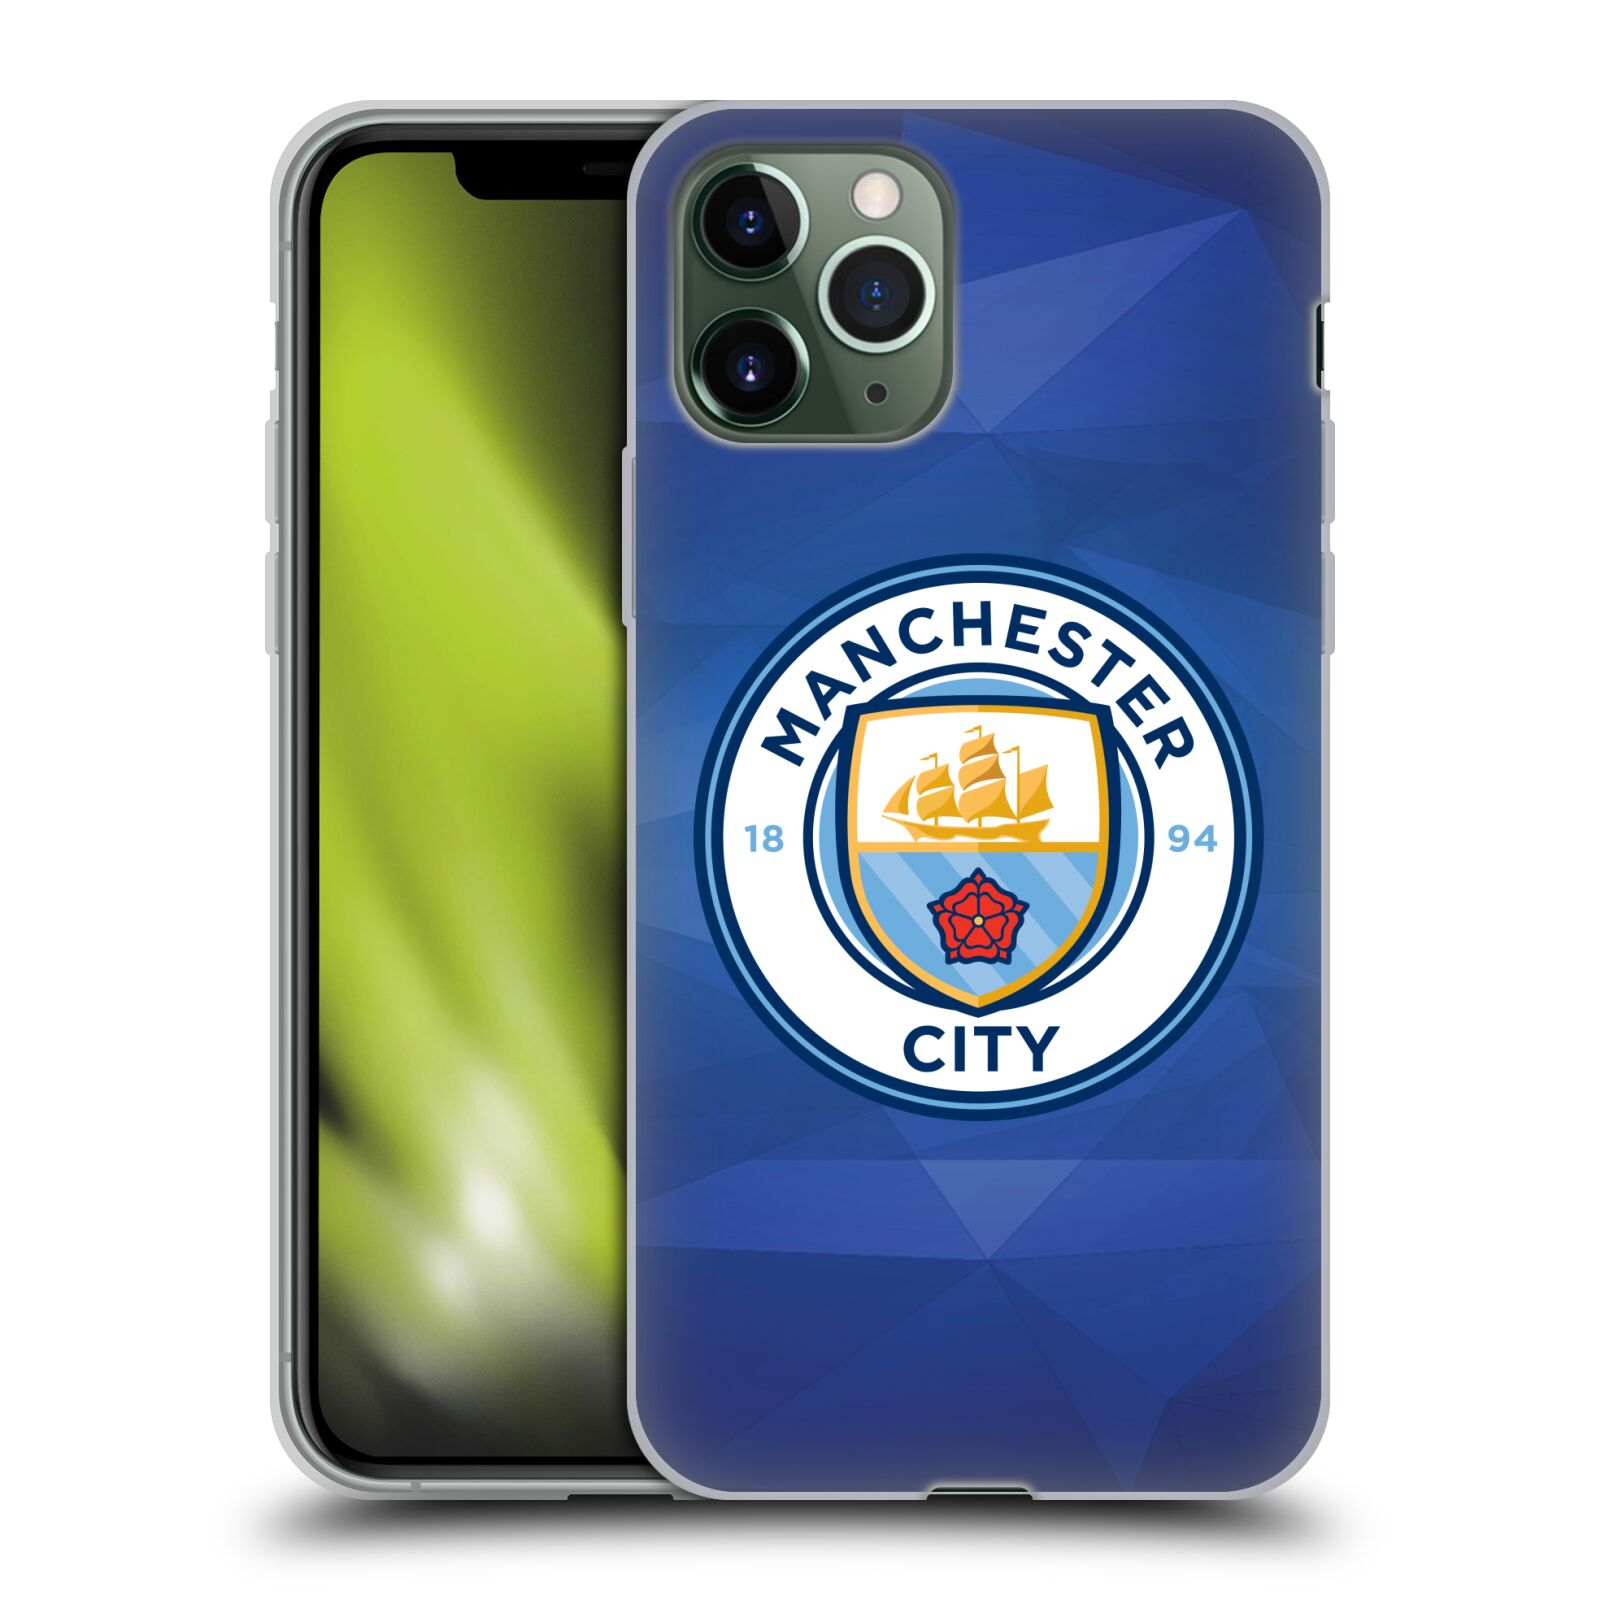 gucci phone case iphone 8 amazon - Silikonové pouzdro na mobil Apple iPhone 11 Pro - Head Case - Manchester City FC - Modré nové logo